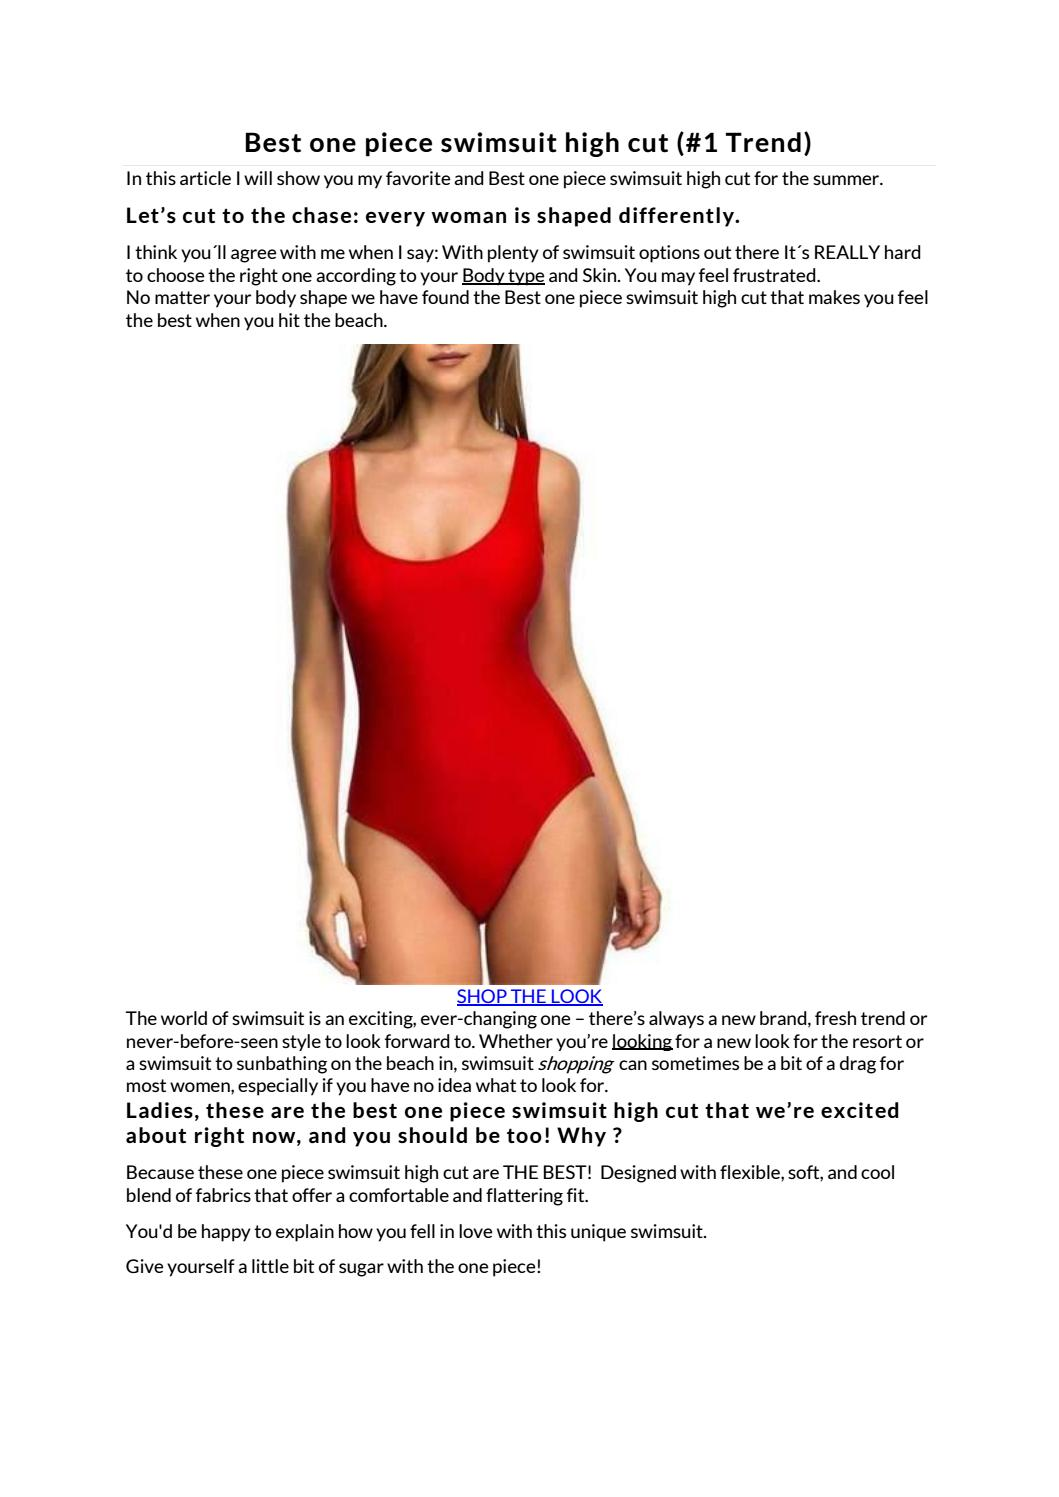 c35c48e82f3 Best one piece swimsuit high cut (#1 Trend) by ...